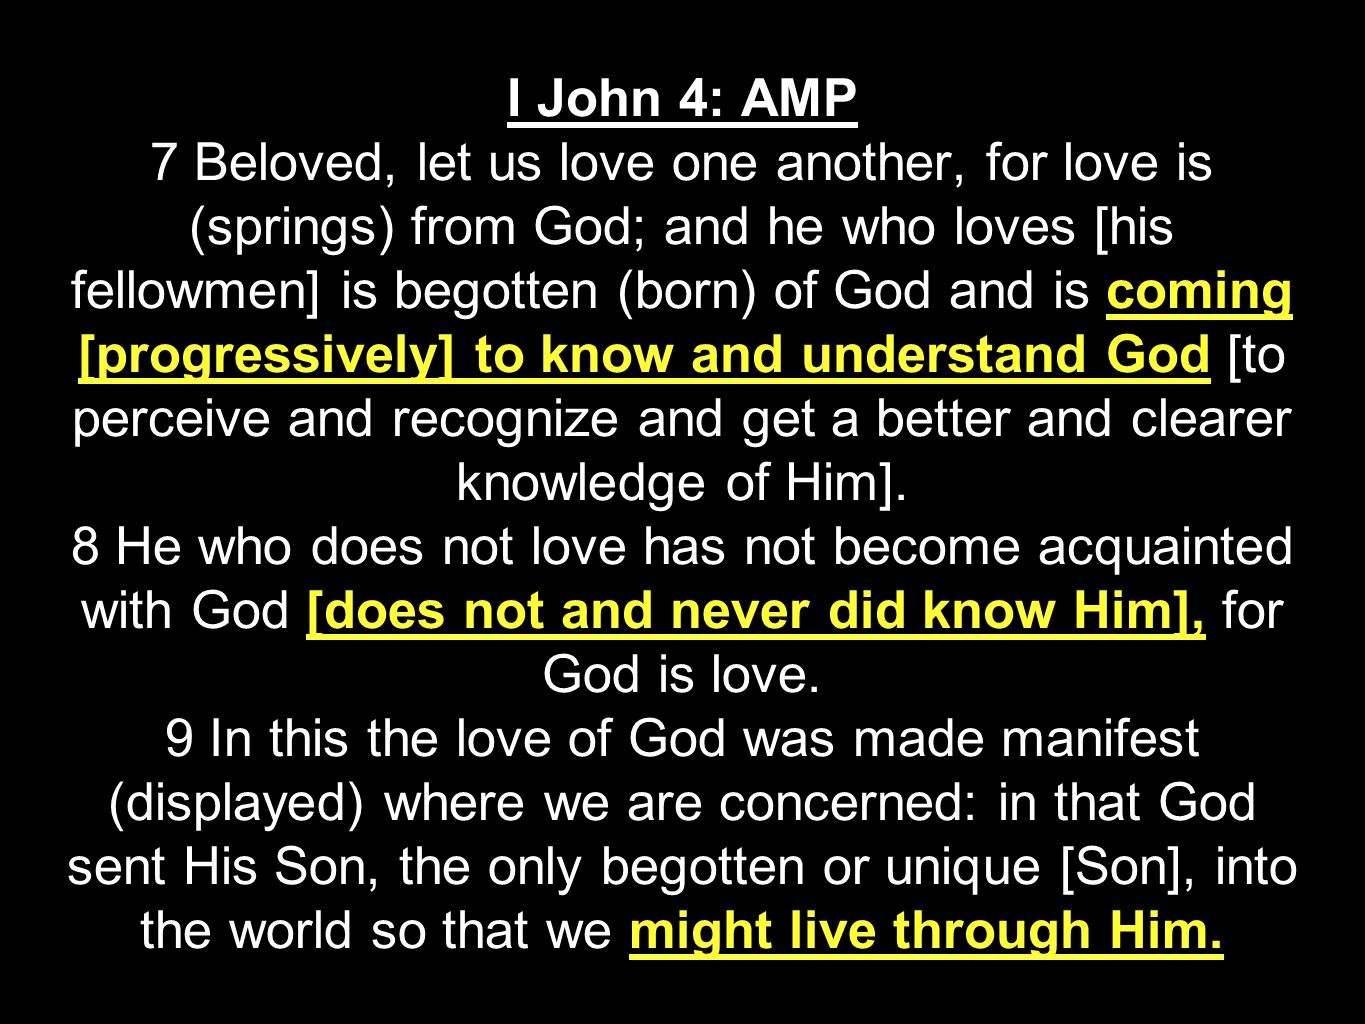 I John 4: AMP 7 Beloved, let us love one another, for love is (springs) from God; and he who loves [his fellowmen] is begotten (born) of God and is coming [progressively] to know and understand God [to perceive and recognize and get a better and clearer knowledge of Him].